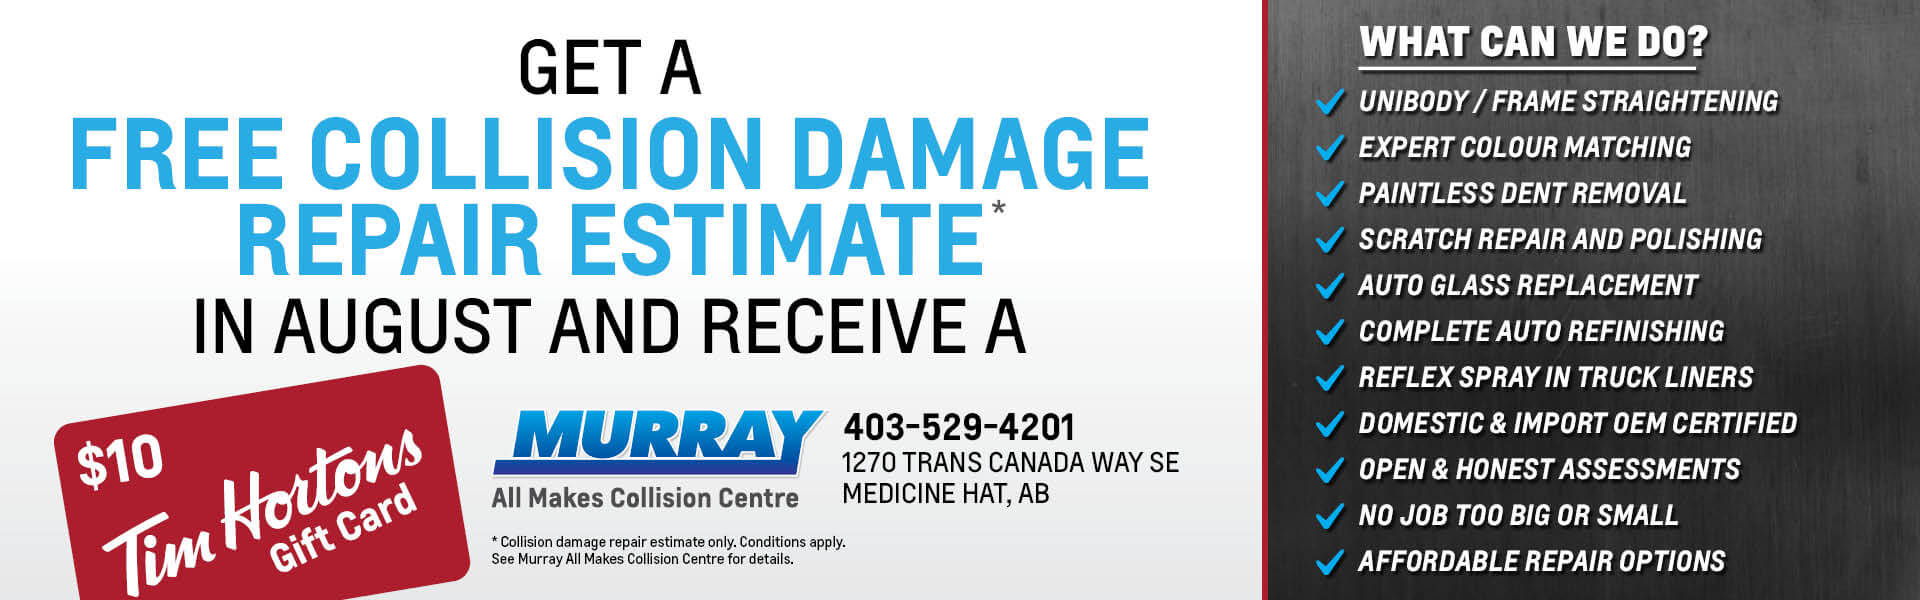 Get a free collision damage repair estimate in  august and receive a $10 Tim Horton's gift card